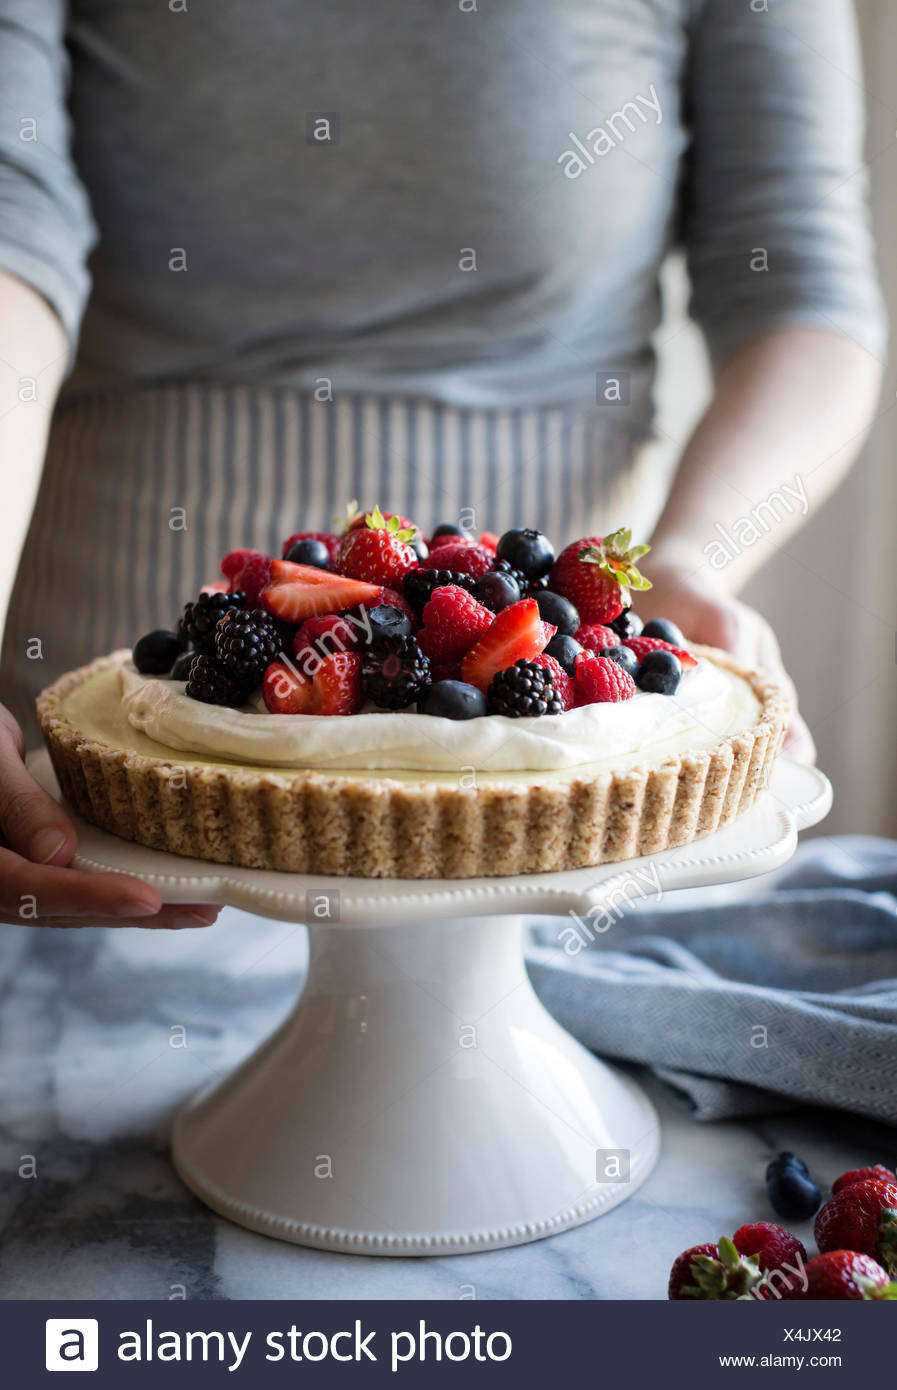 Woman with a No-Bake Lemon Berry Coconut Cream Tart with fresh berries (vegan, gluten-free, refined sugar-free) on a cake stand - Stock Image